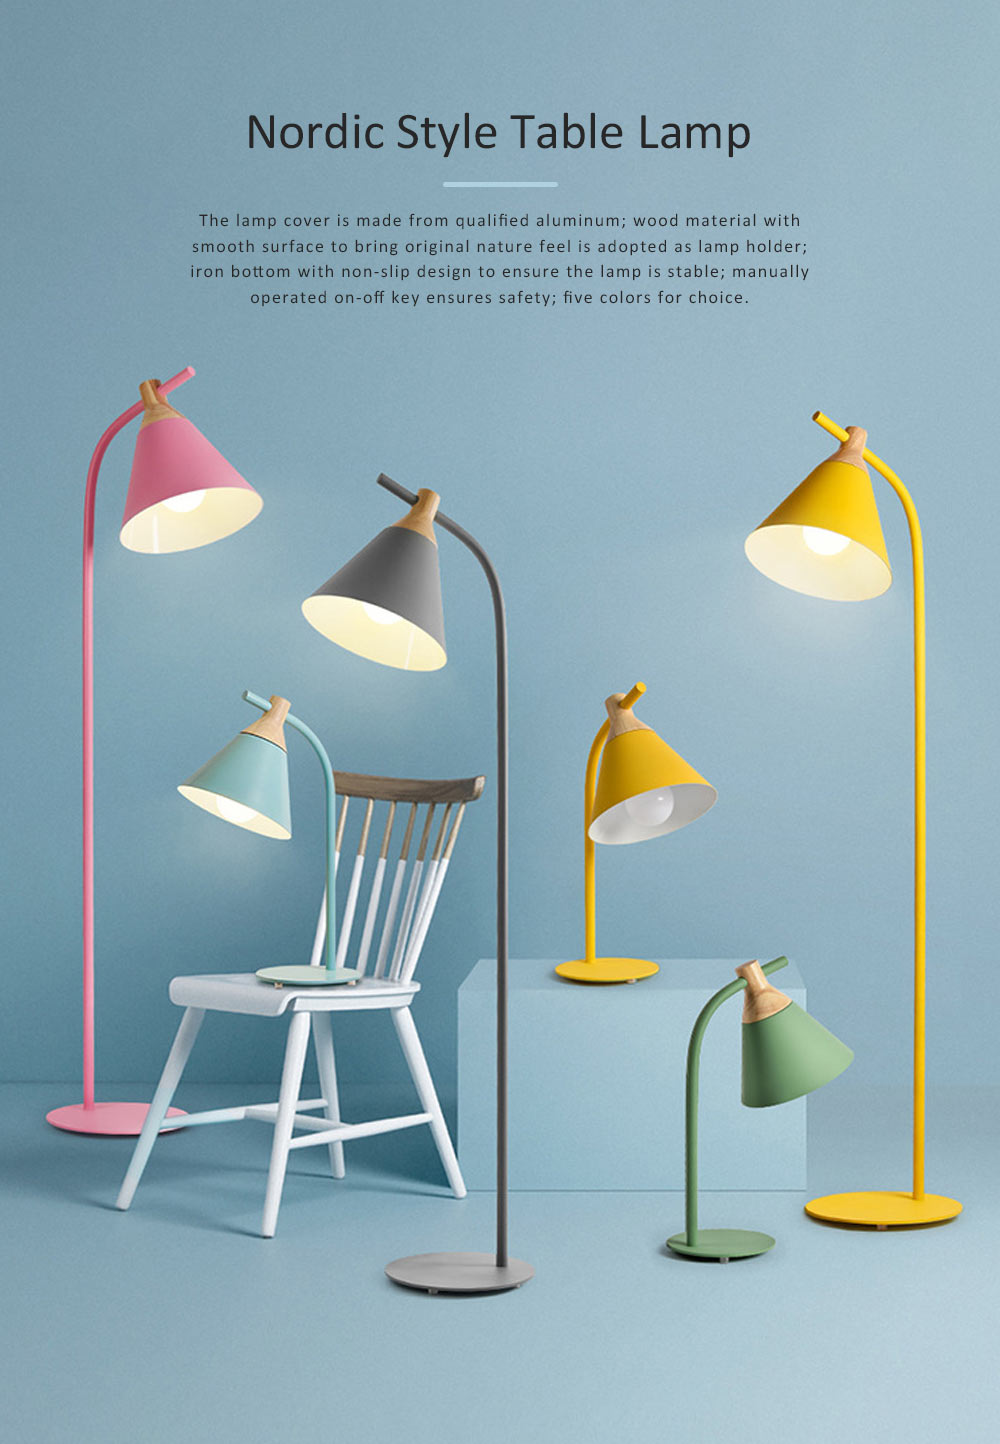 Nordic Style Table Lamp, Macaron LED Light for Office, Home, Eye Protection Working Essential LED Night Light 0